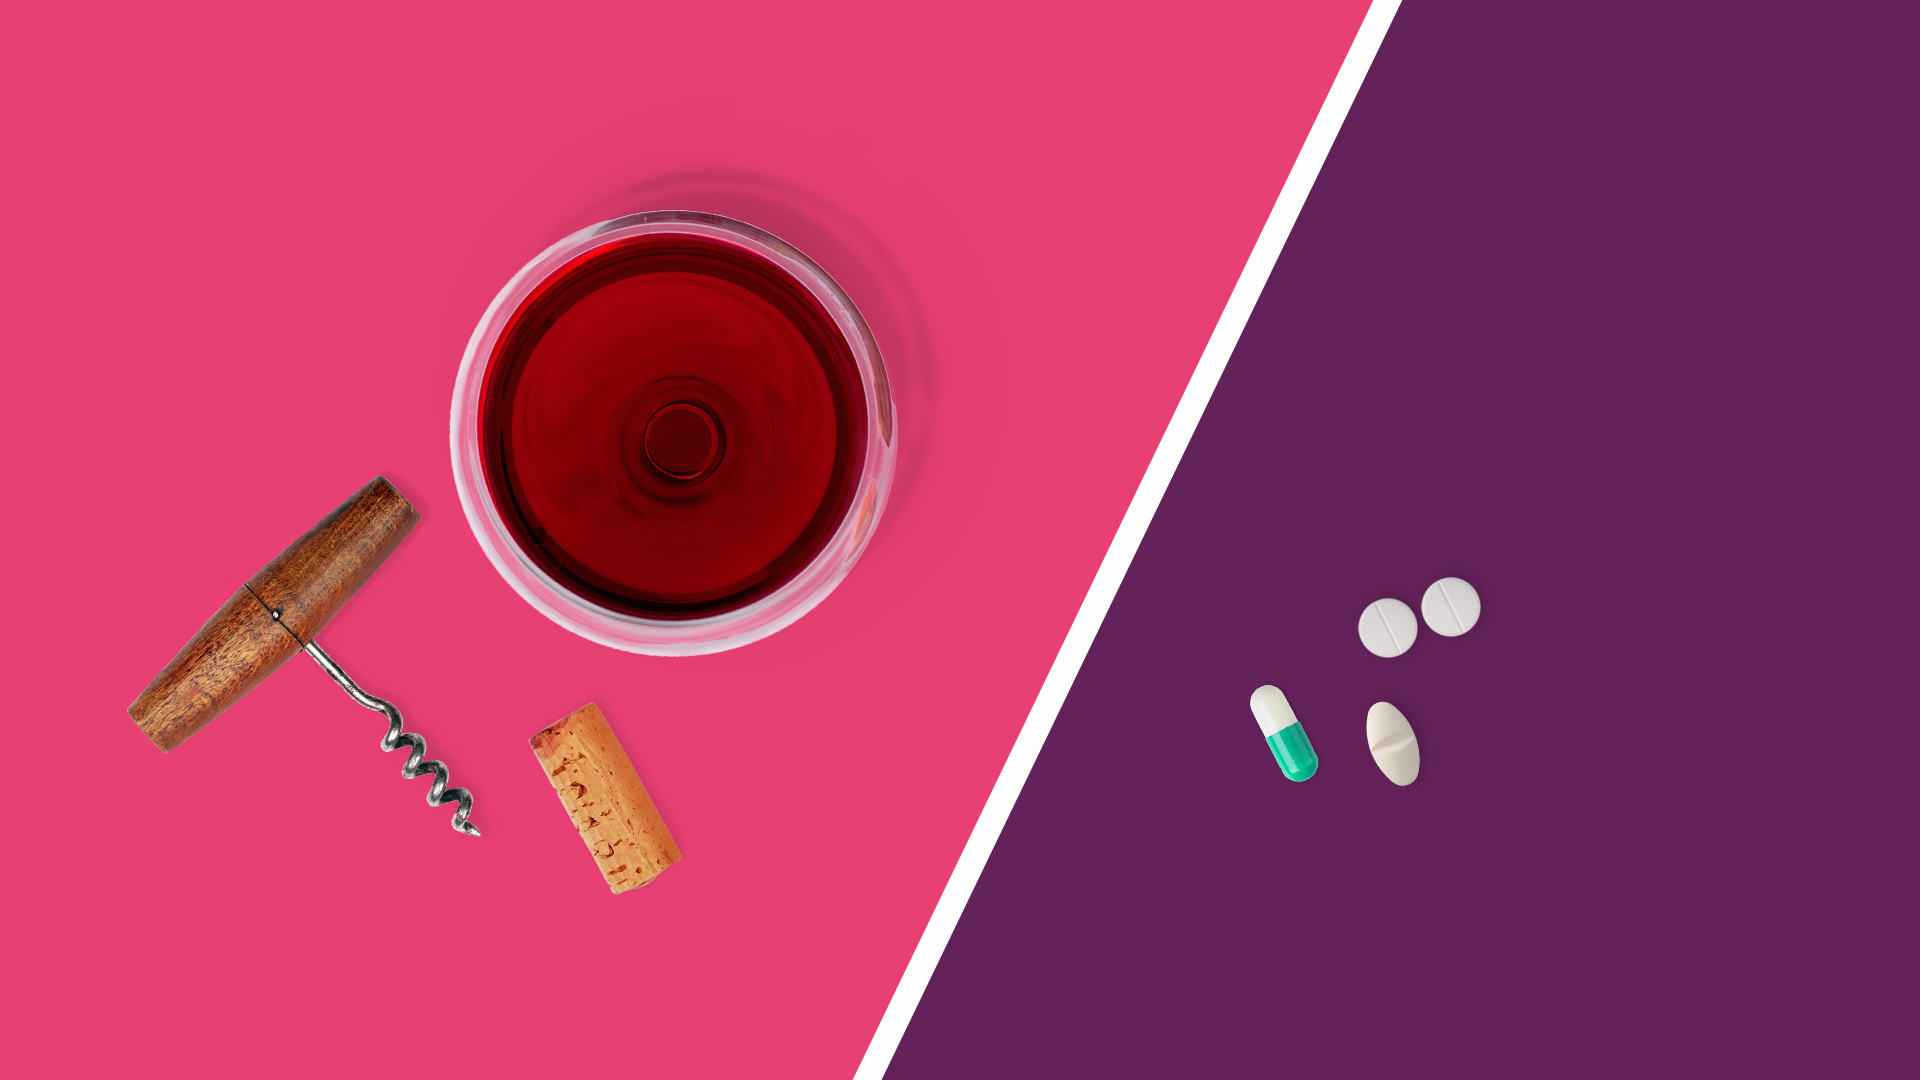 Is it safe to take anti-anxiety medication with alcohol?